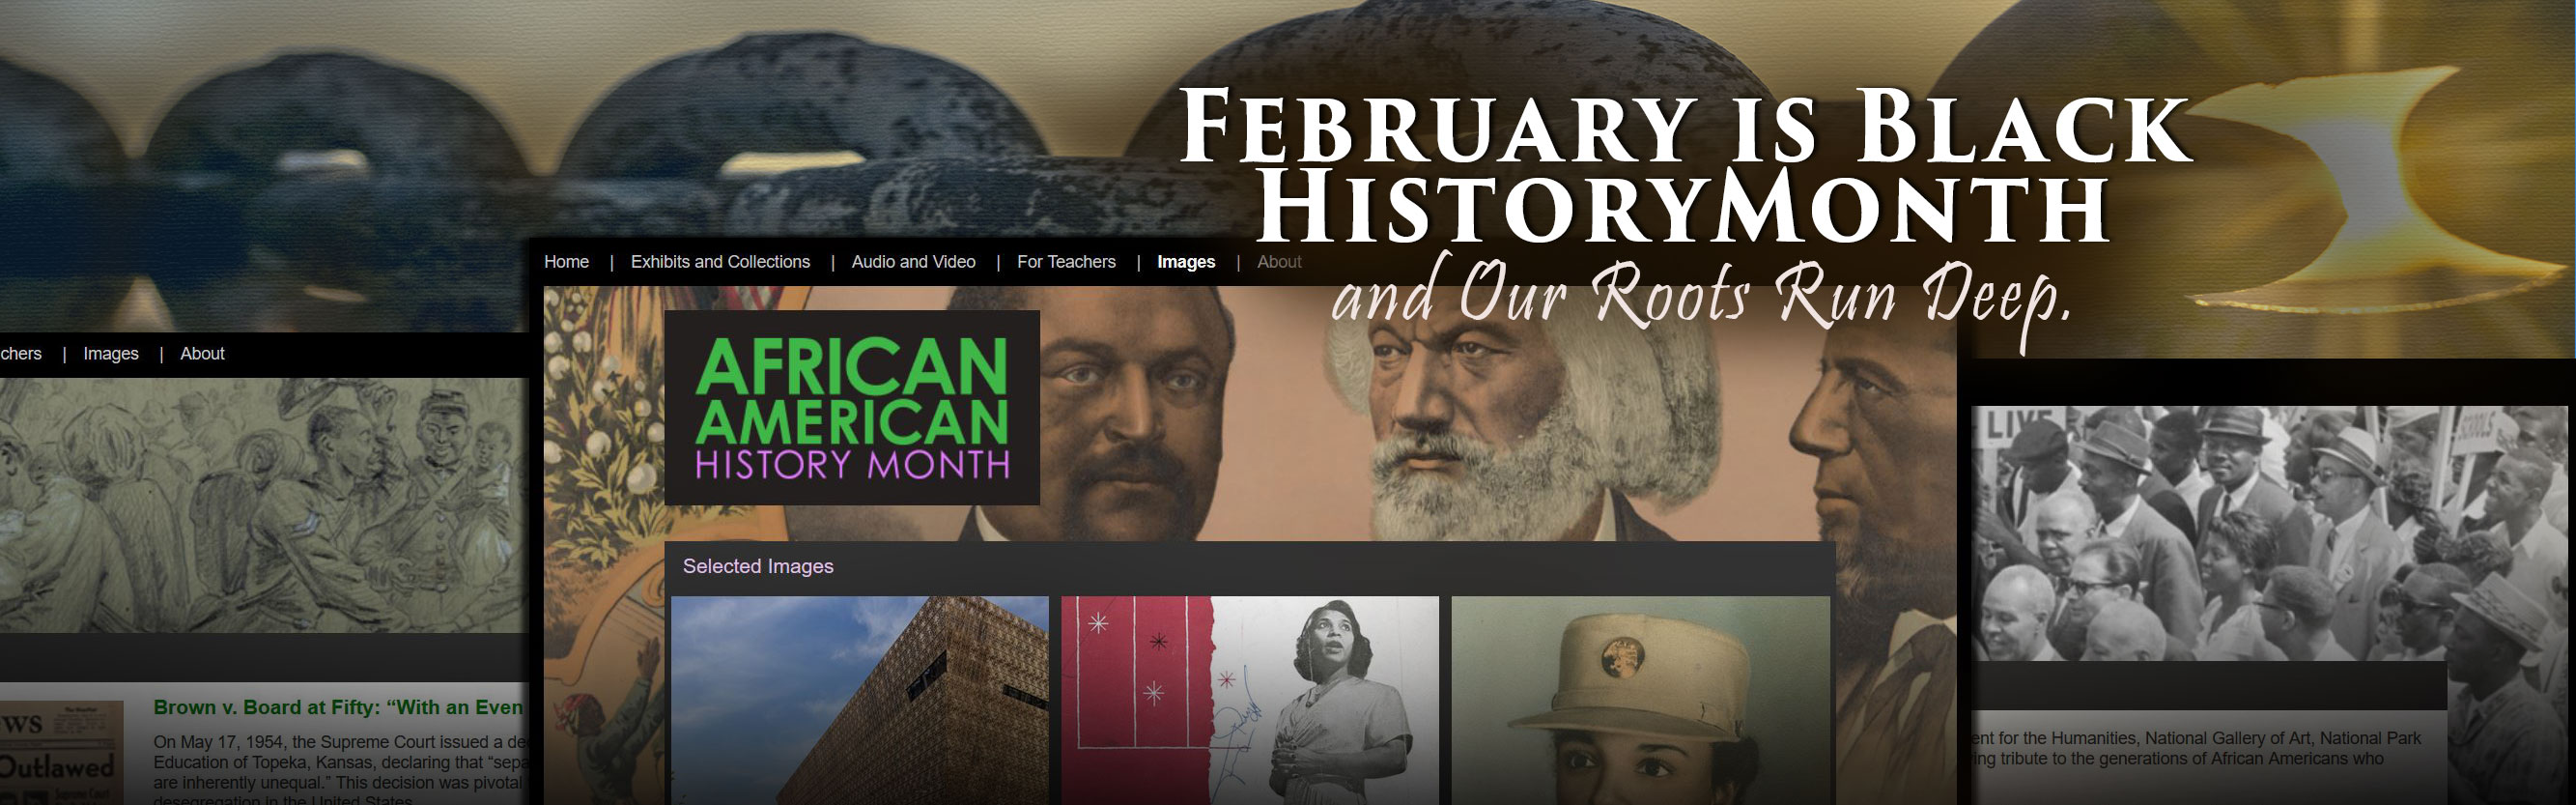 Black History Month + African American History Month .gov